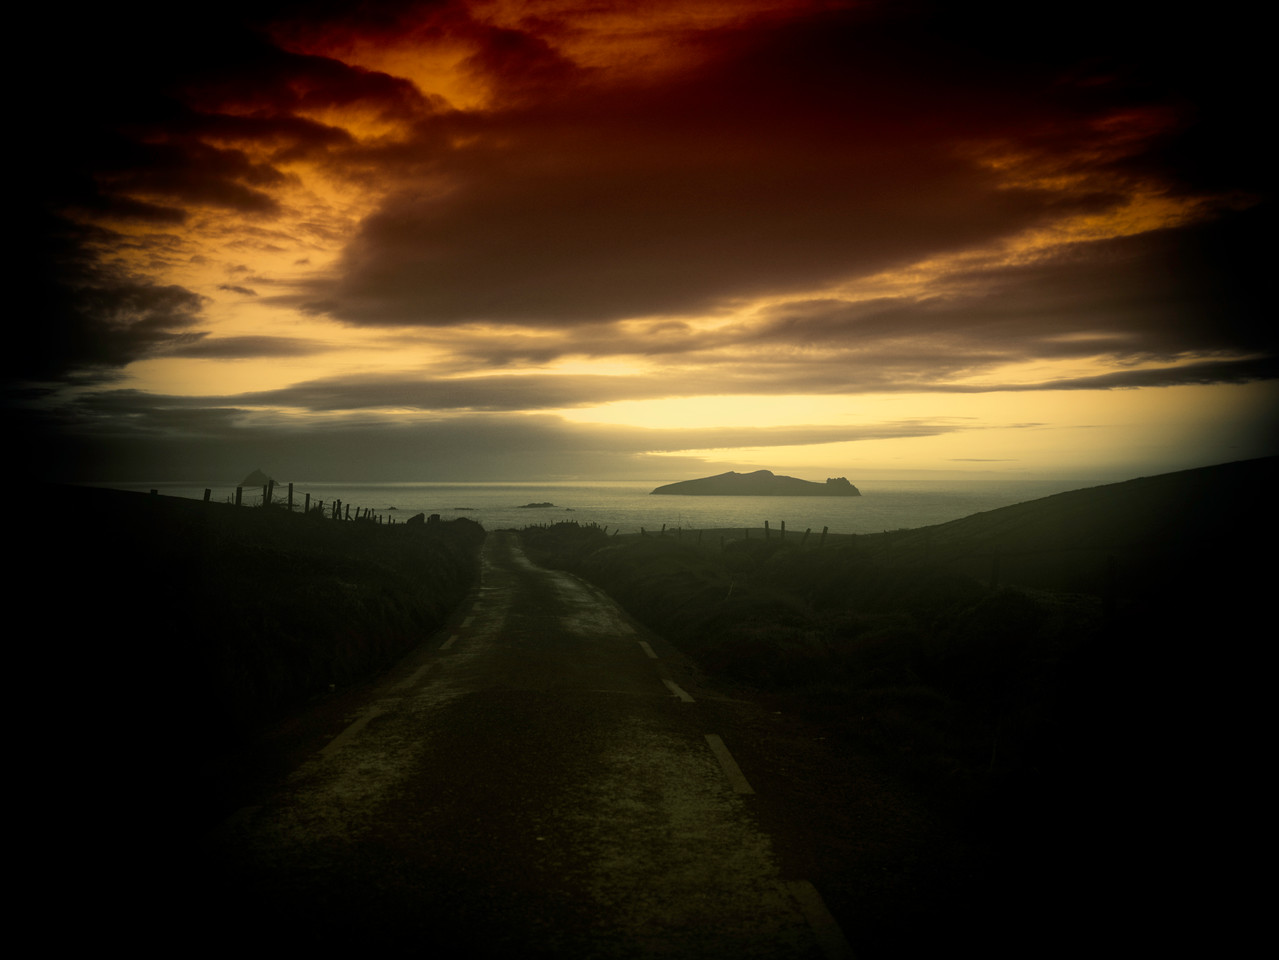 03-03-2012'The road from  Dunquin to the Great Blasket Island, Dingle Peninsula'